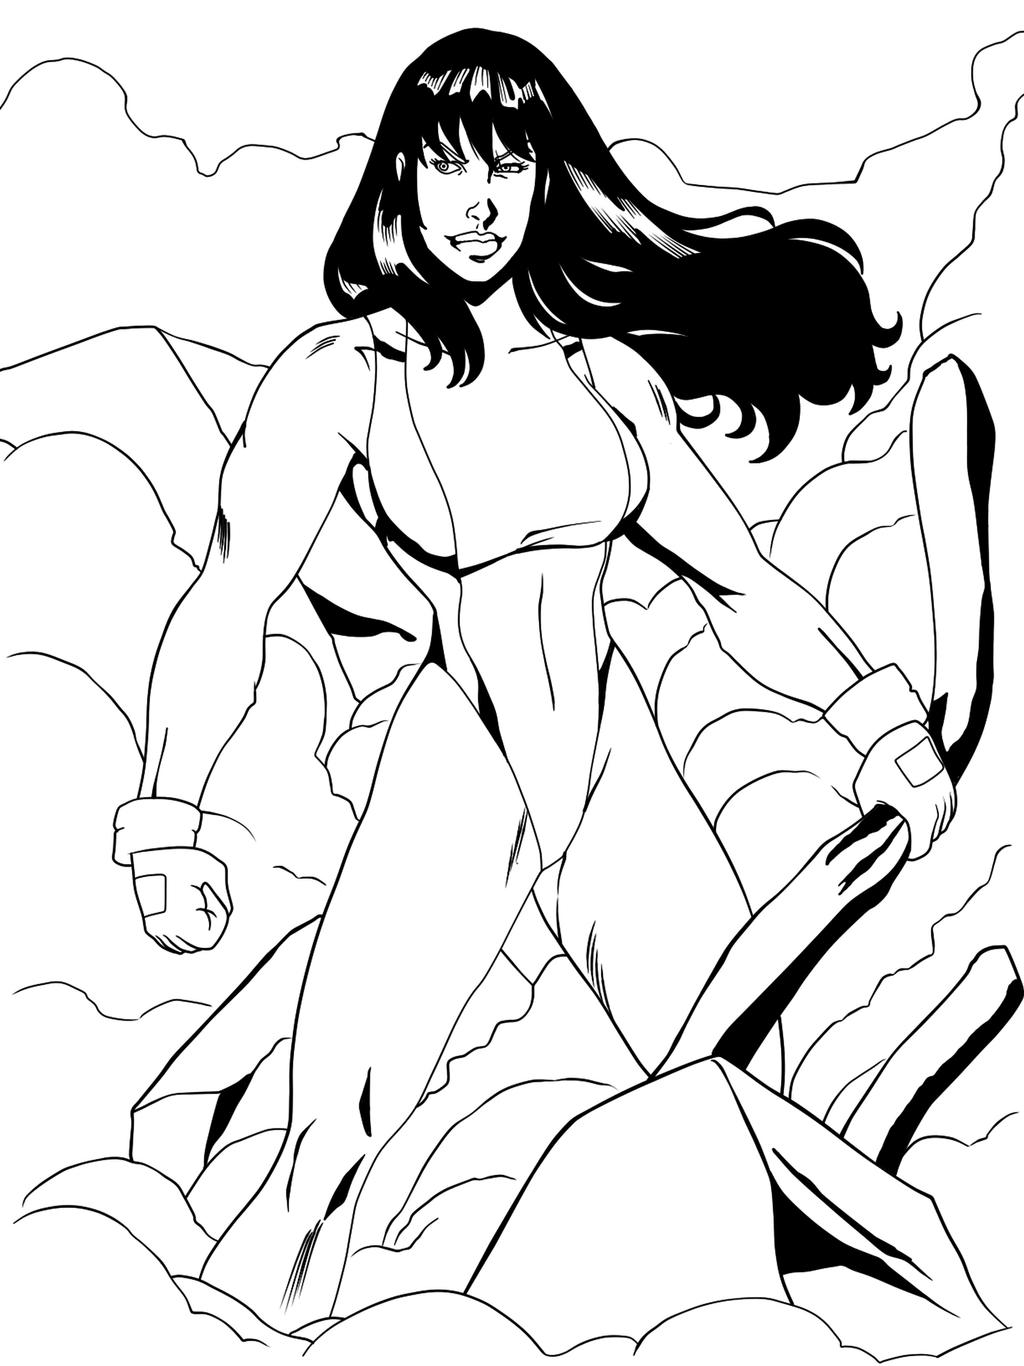 She Hulk After A Battle